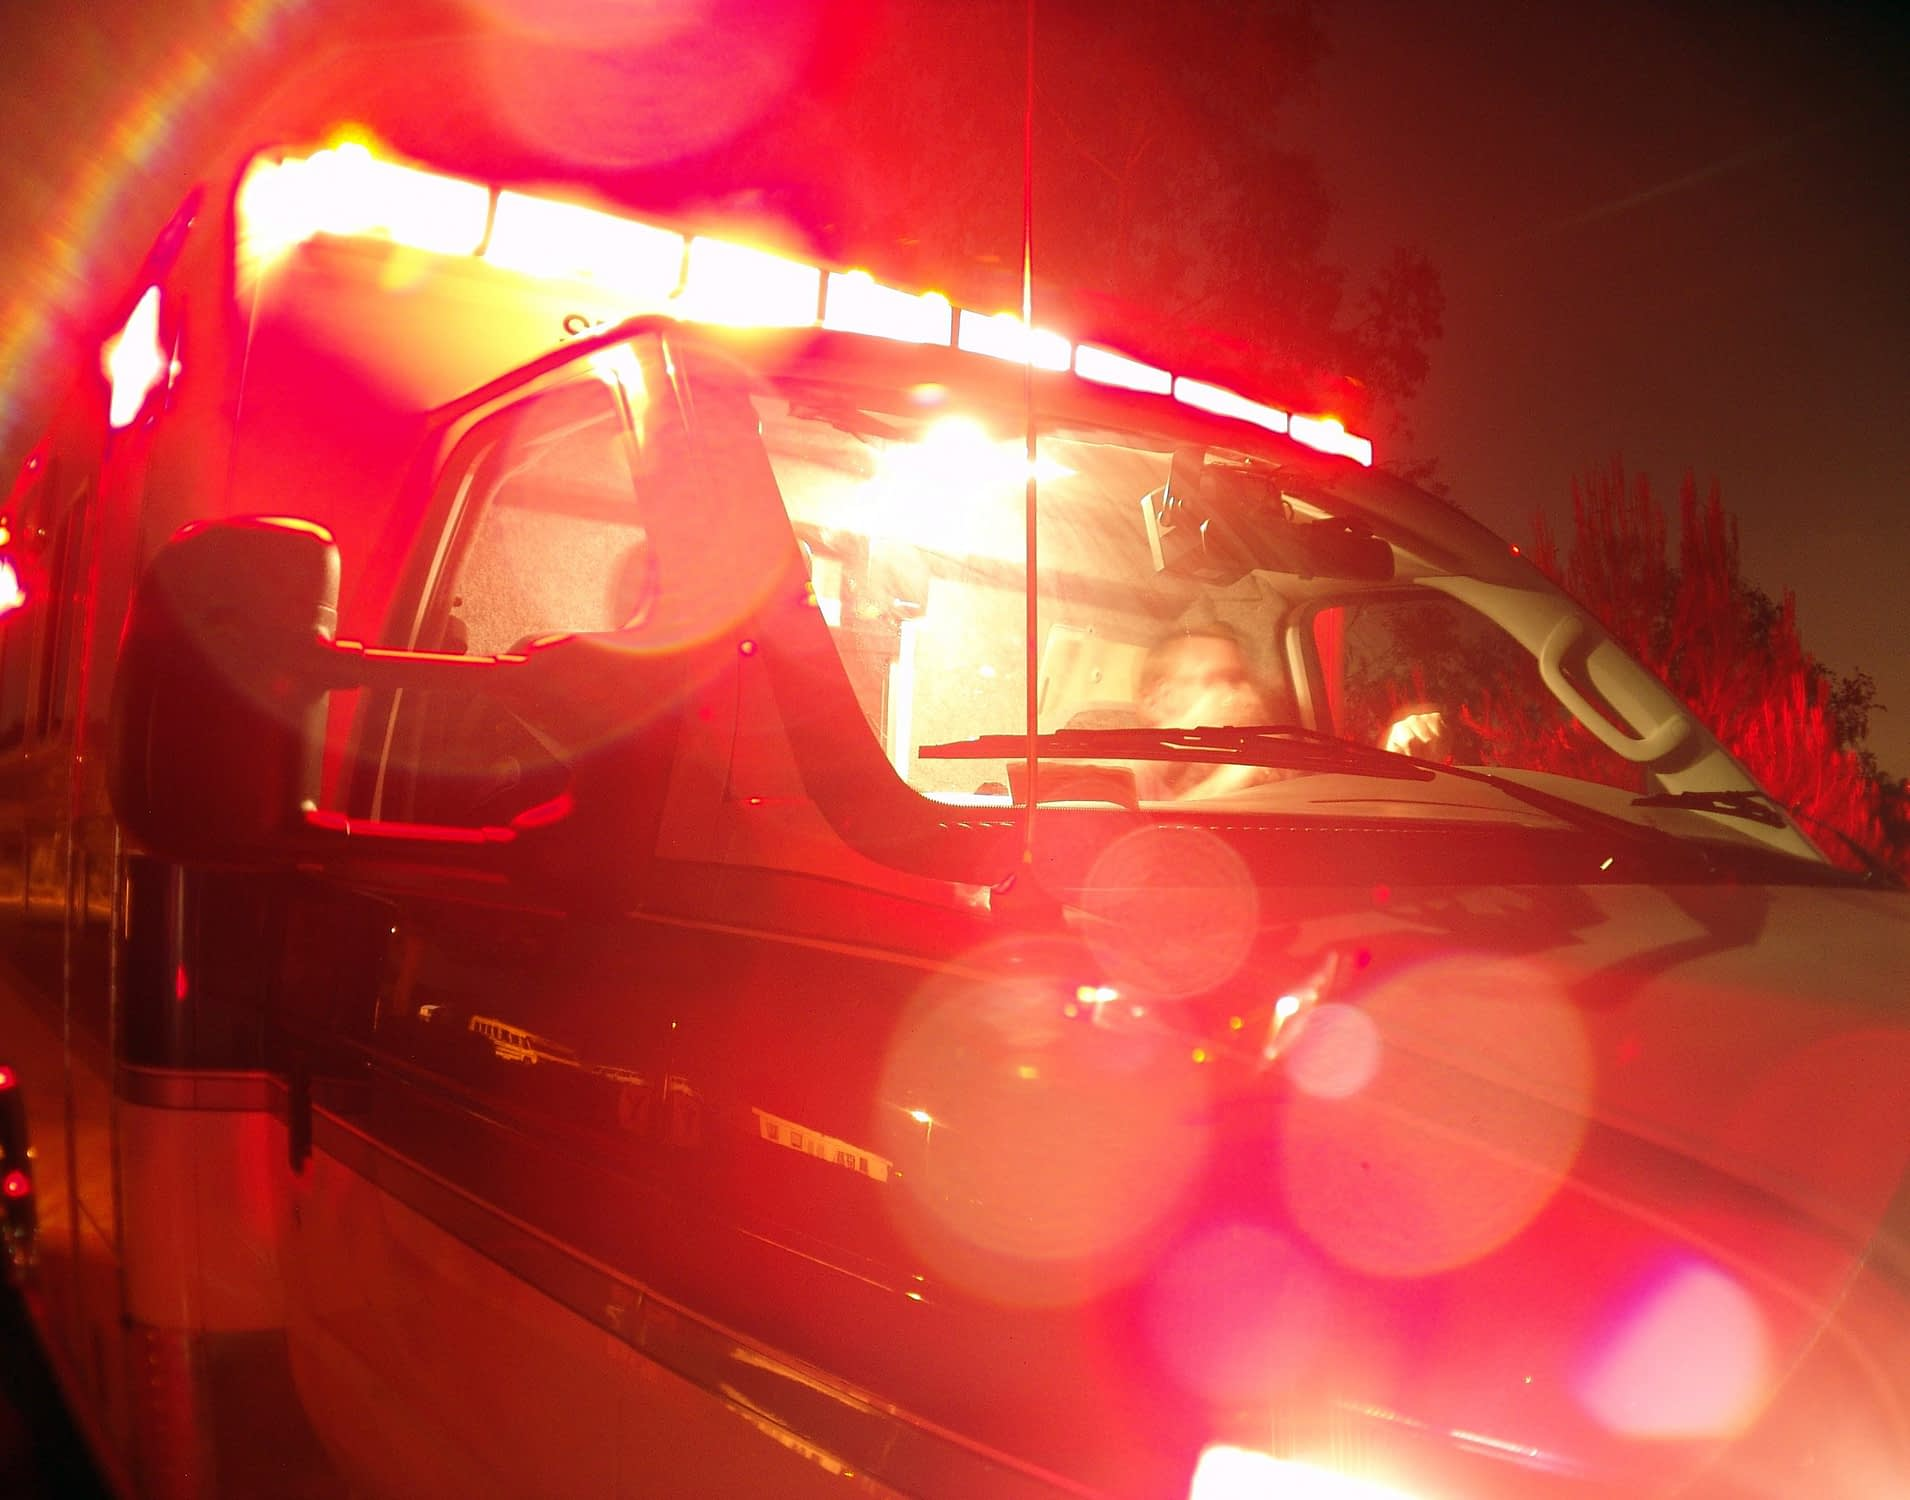 The Cost of a Loss: 12 Expenses to Consider When Calculating the Cost of an Ambulance Crash